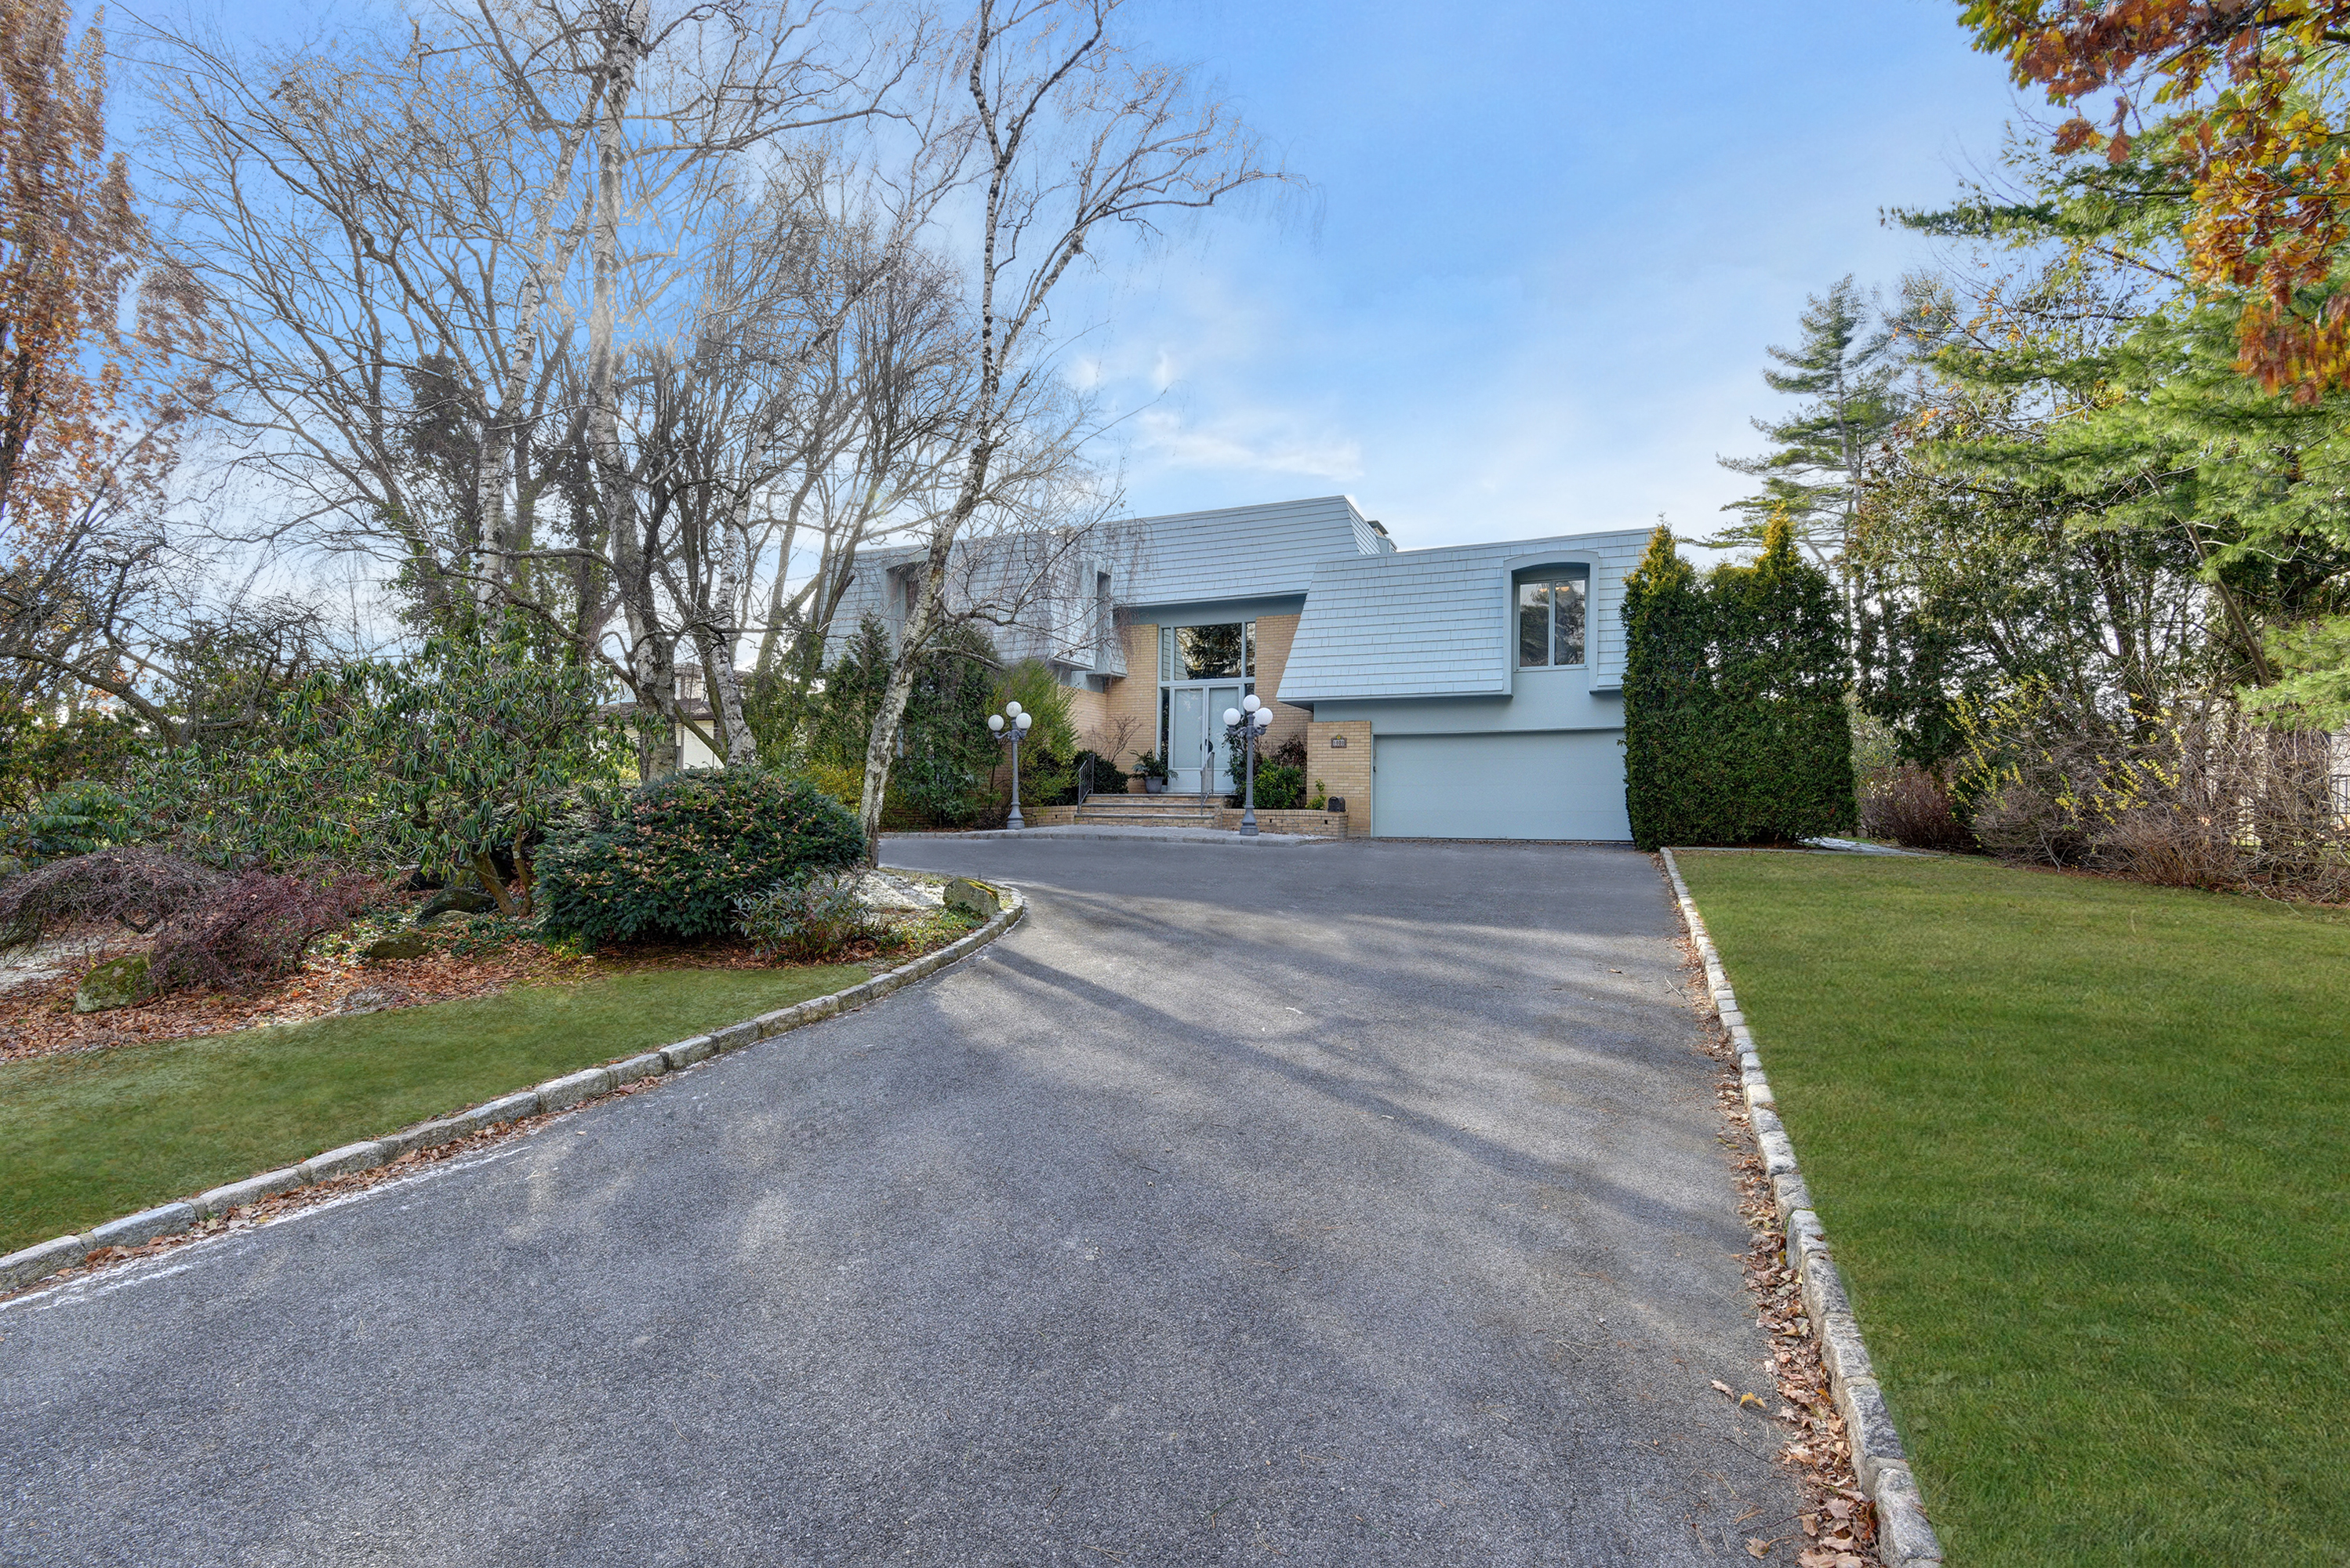 Single Family Home for Sale at Spectacular Waterfront Colonial 1070 Bayhead Drive Mamaroneck, New York, 10543 United States